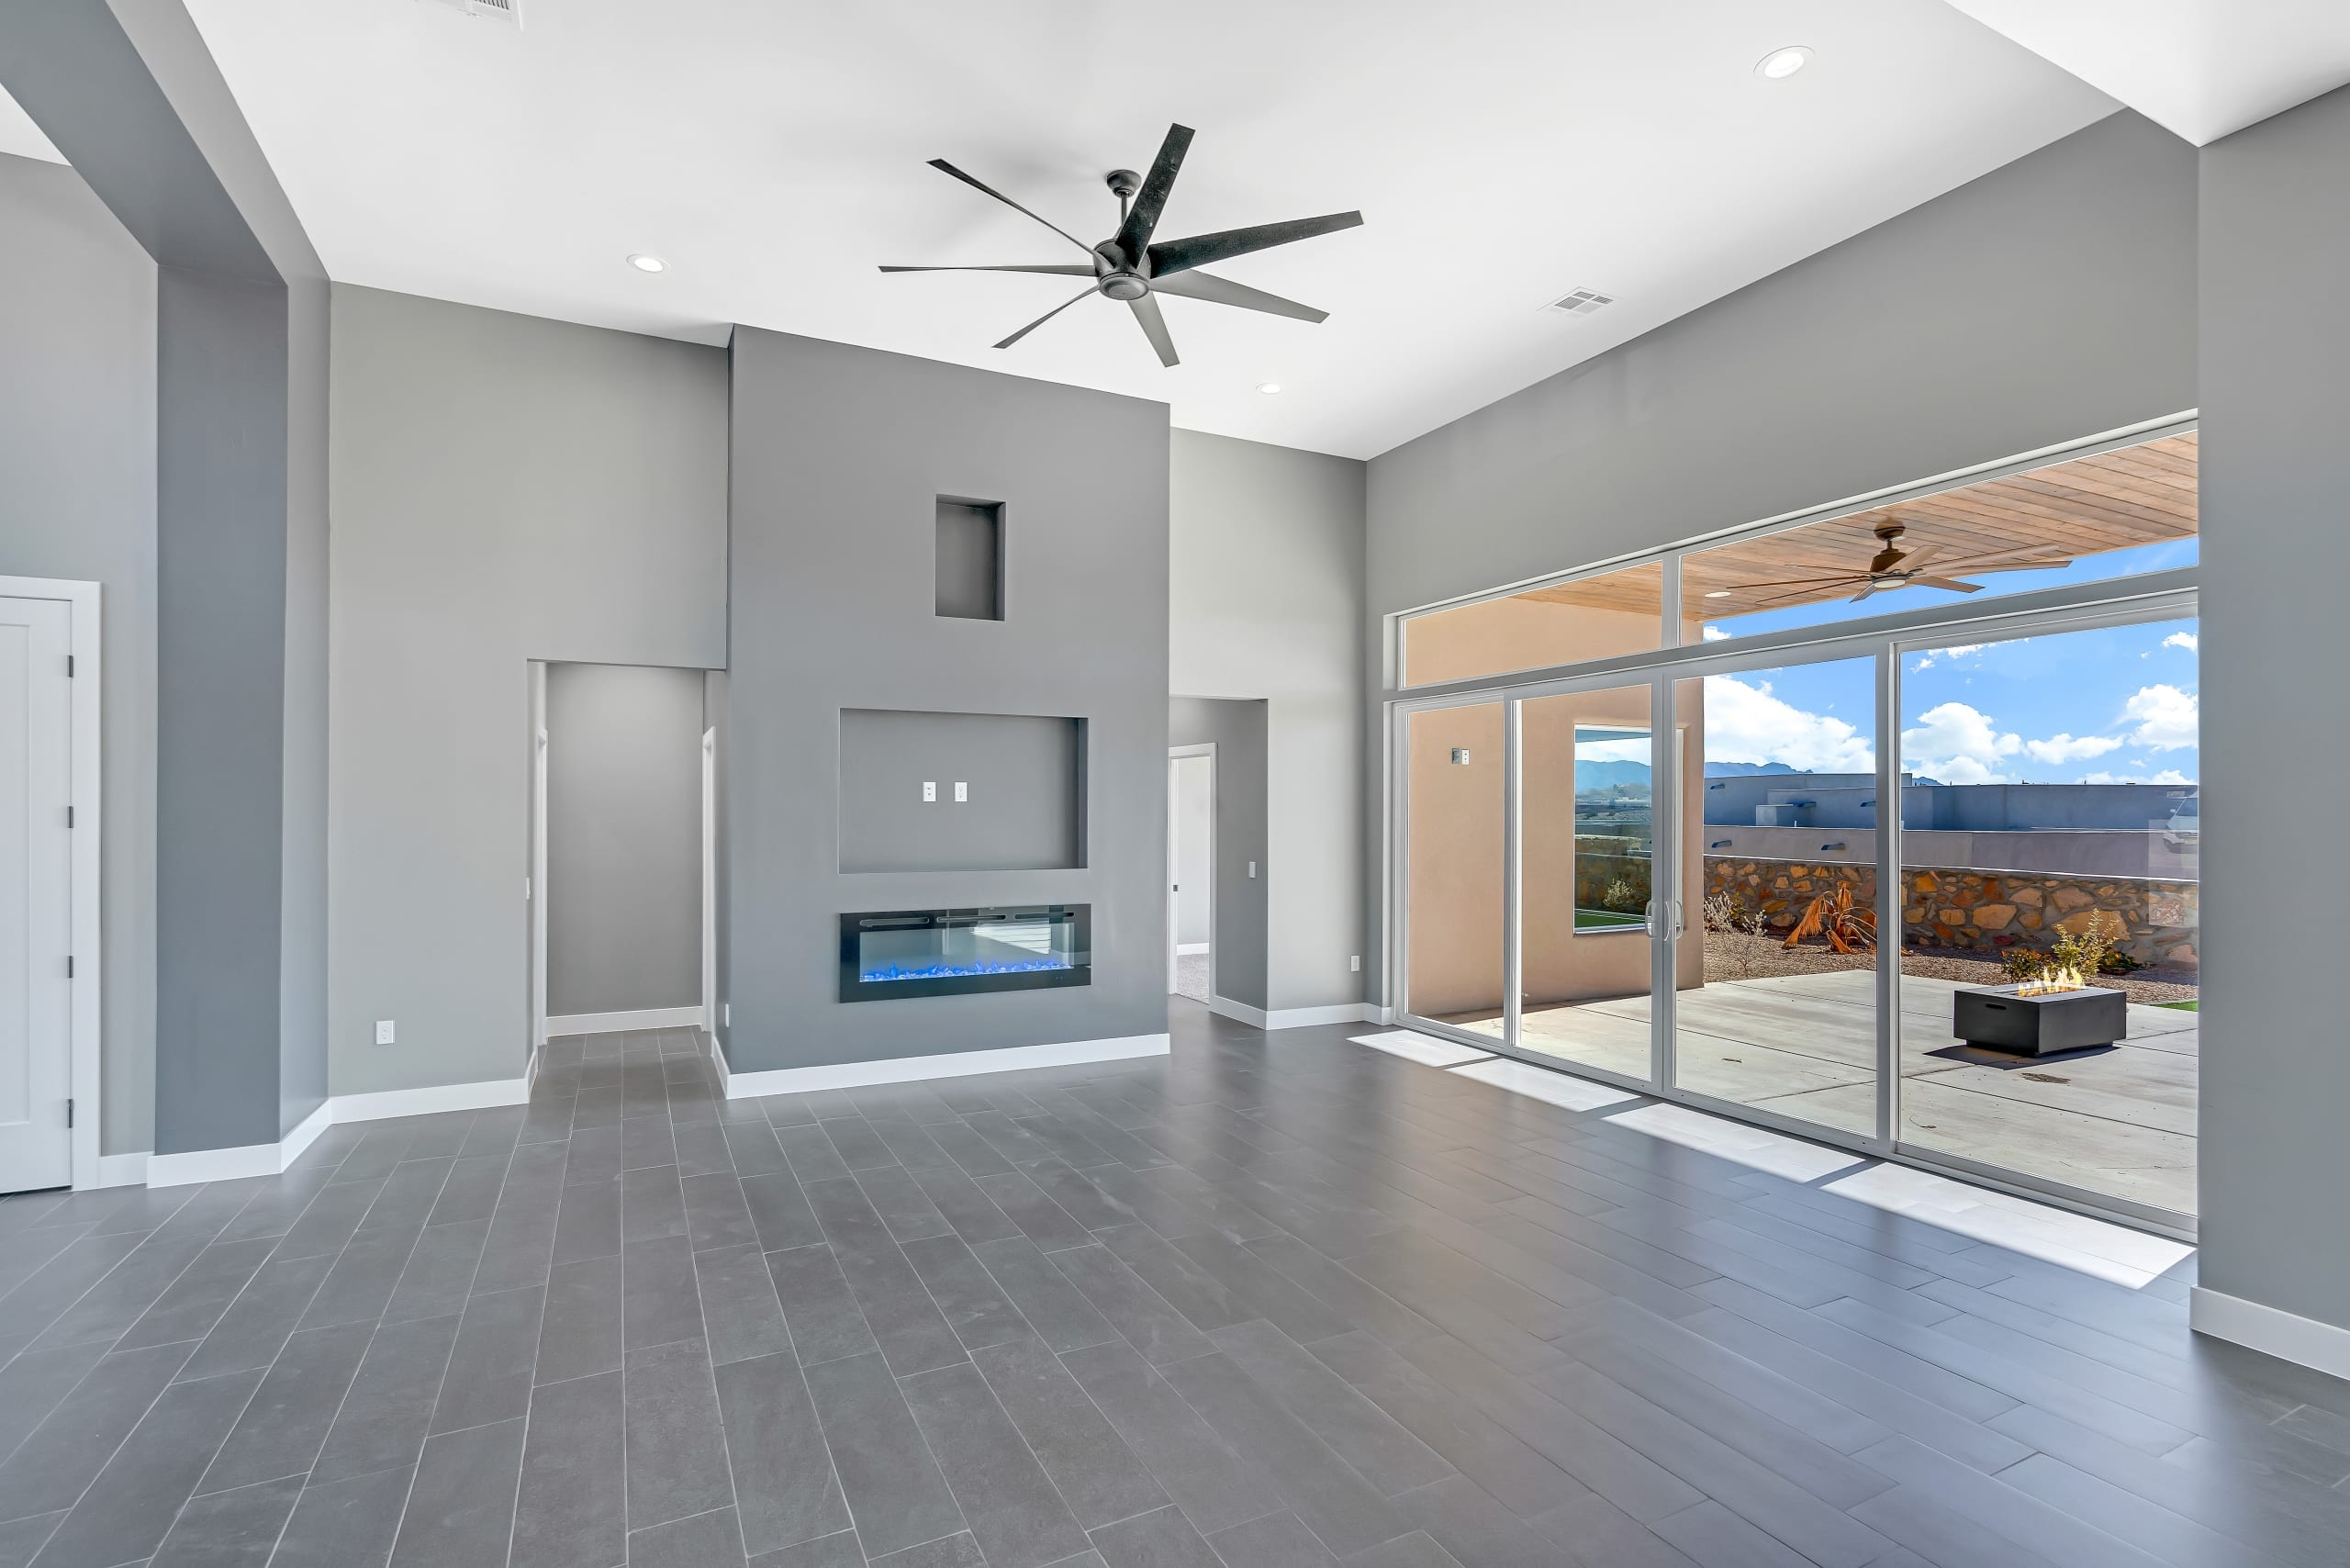 2914 East Springs - Great Room and Back Patio - View from Kitchen